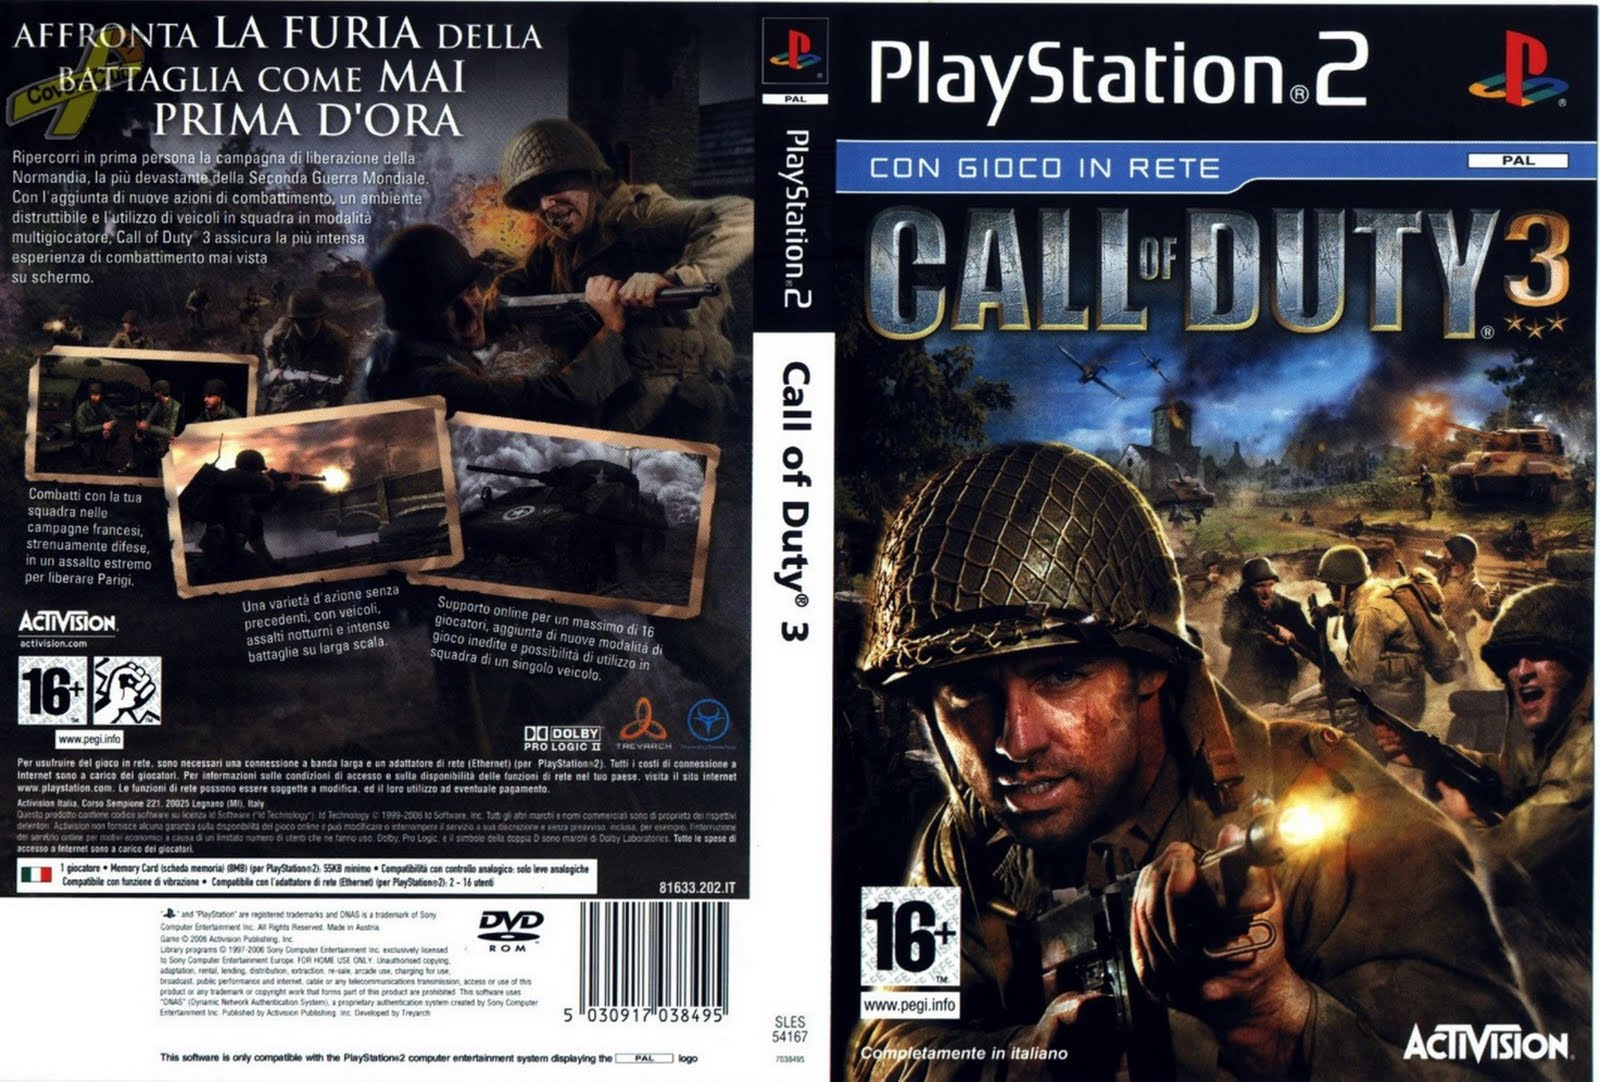 call of duty 3 playstation 2ps2